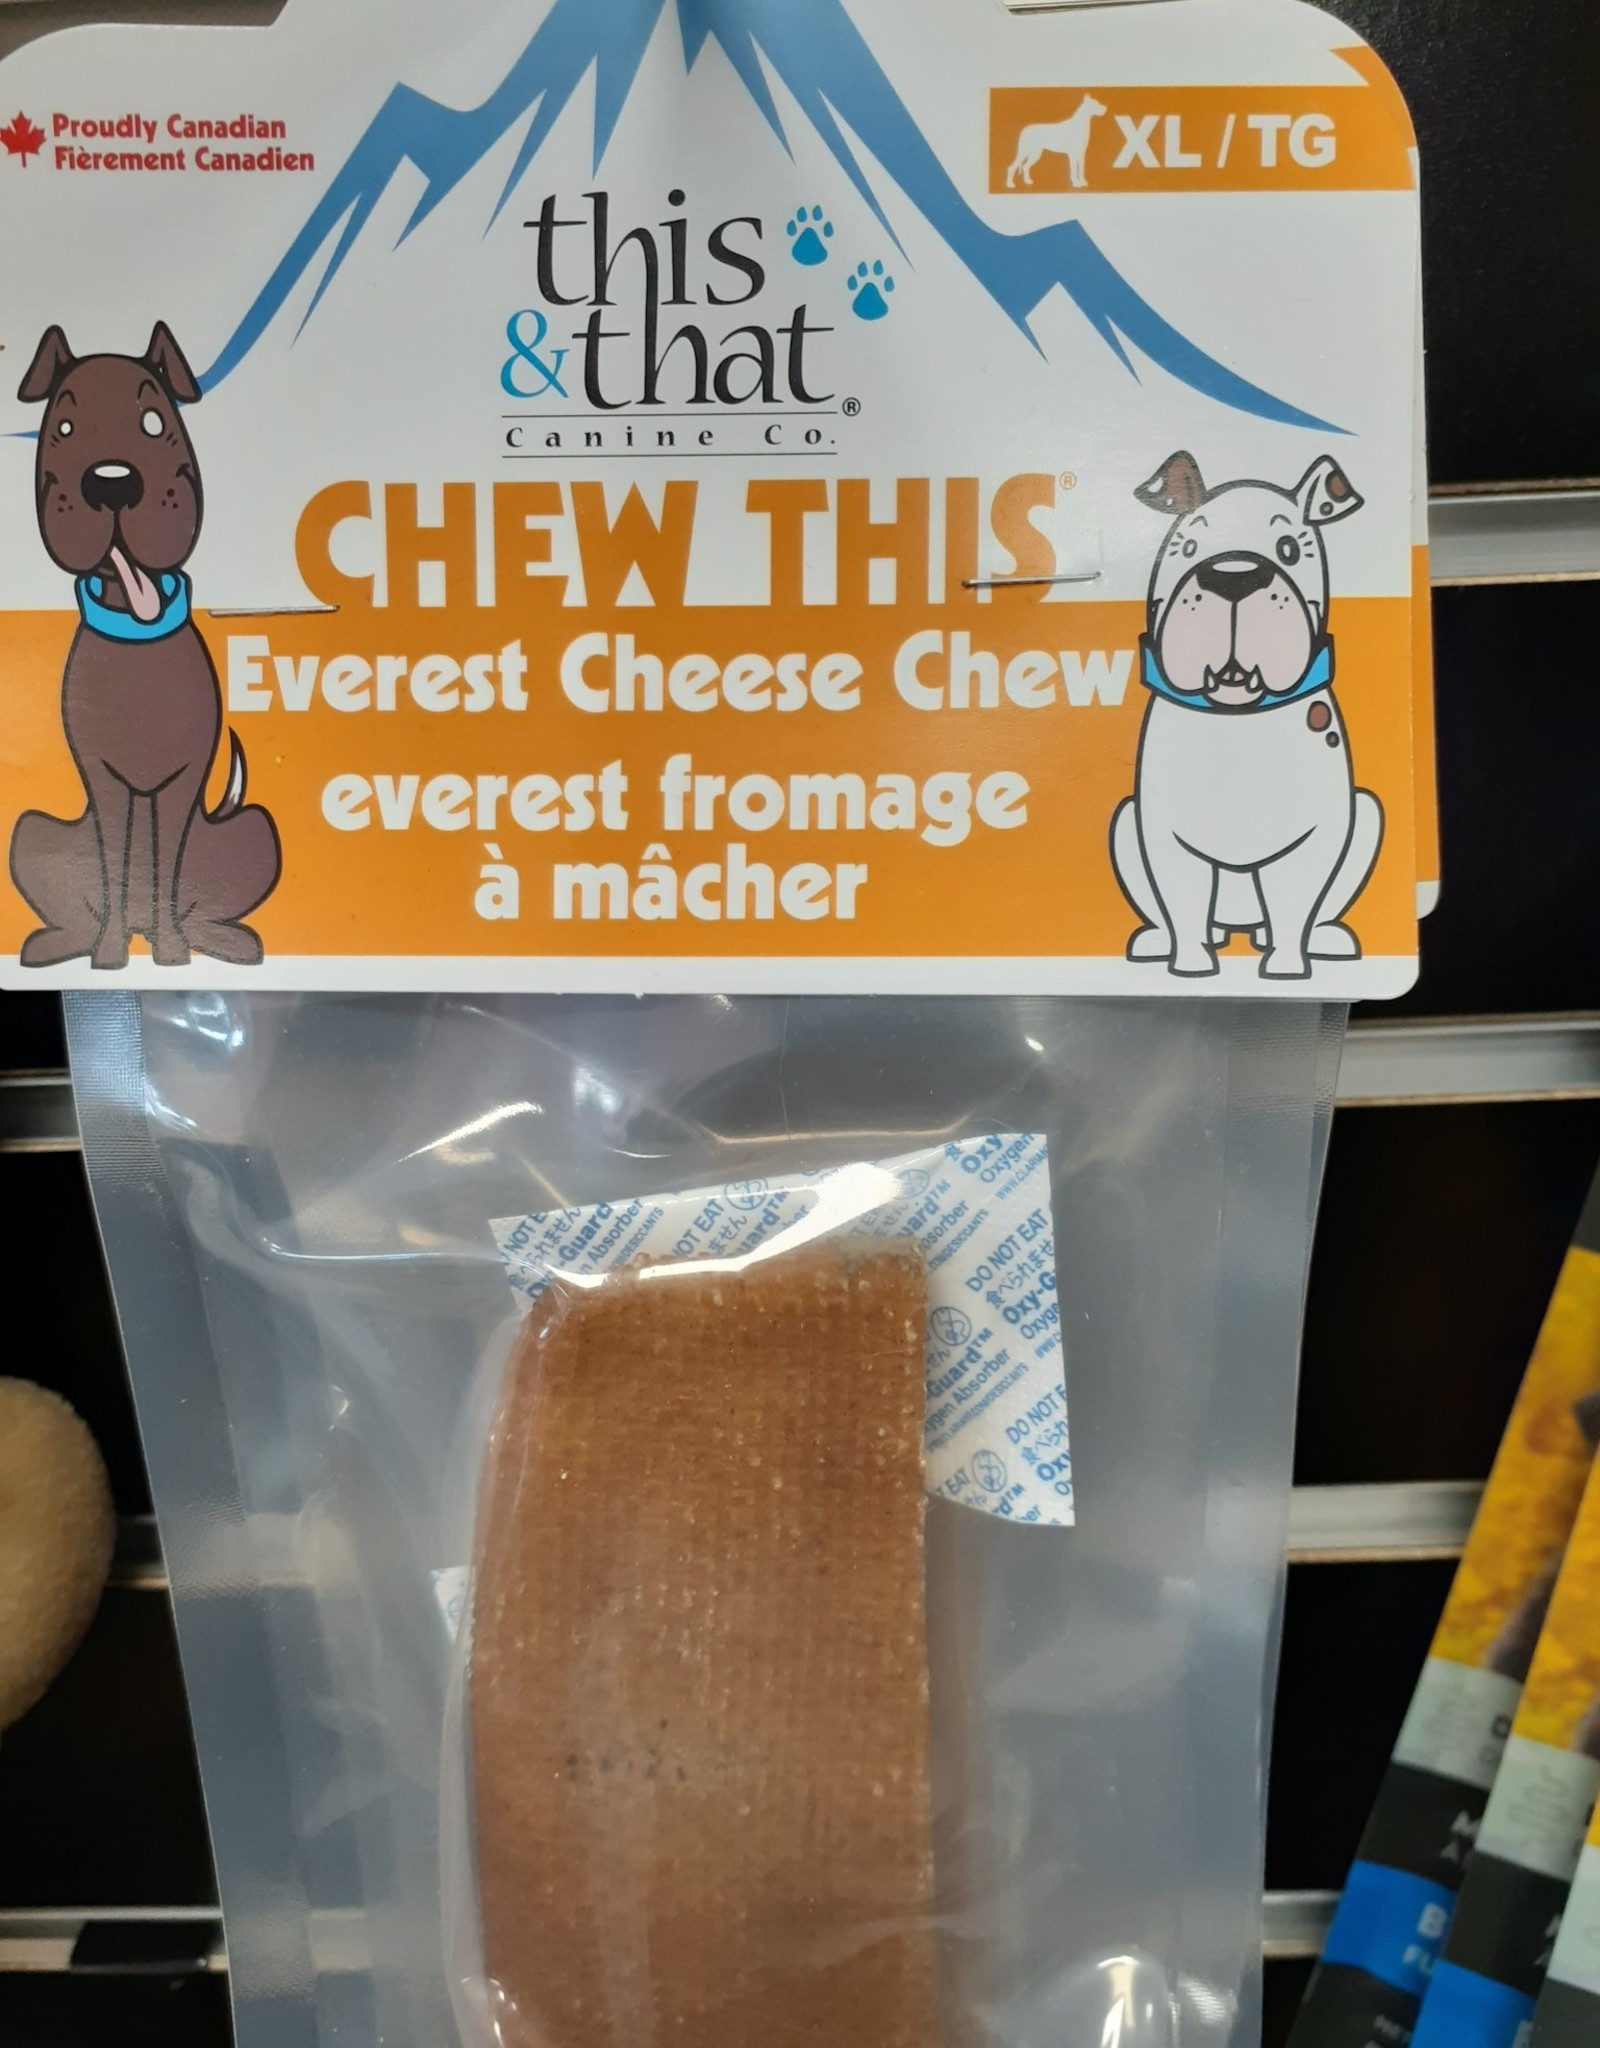 everest cheese ex large